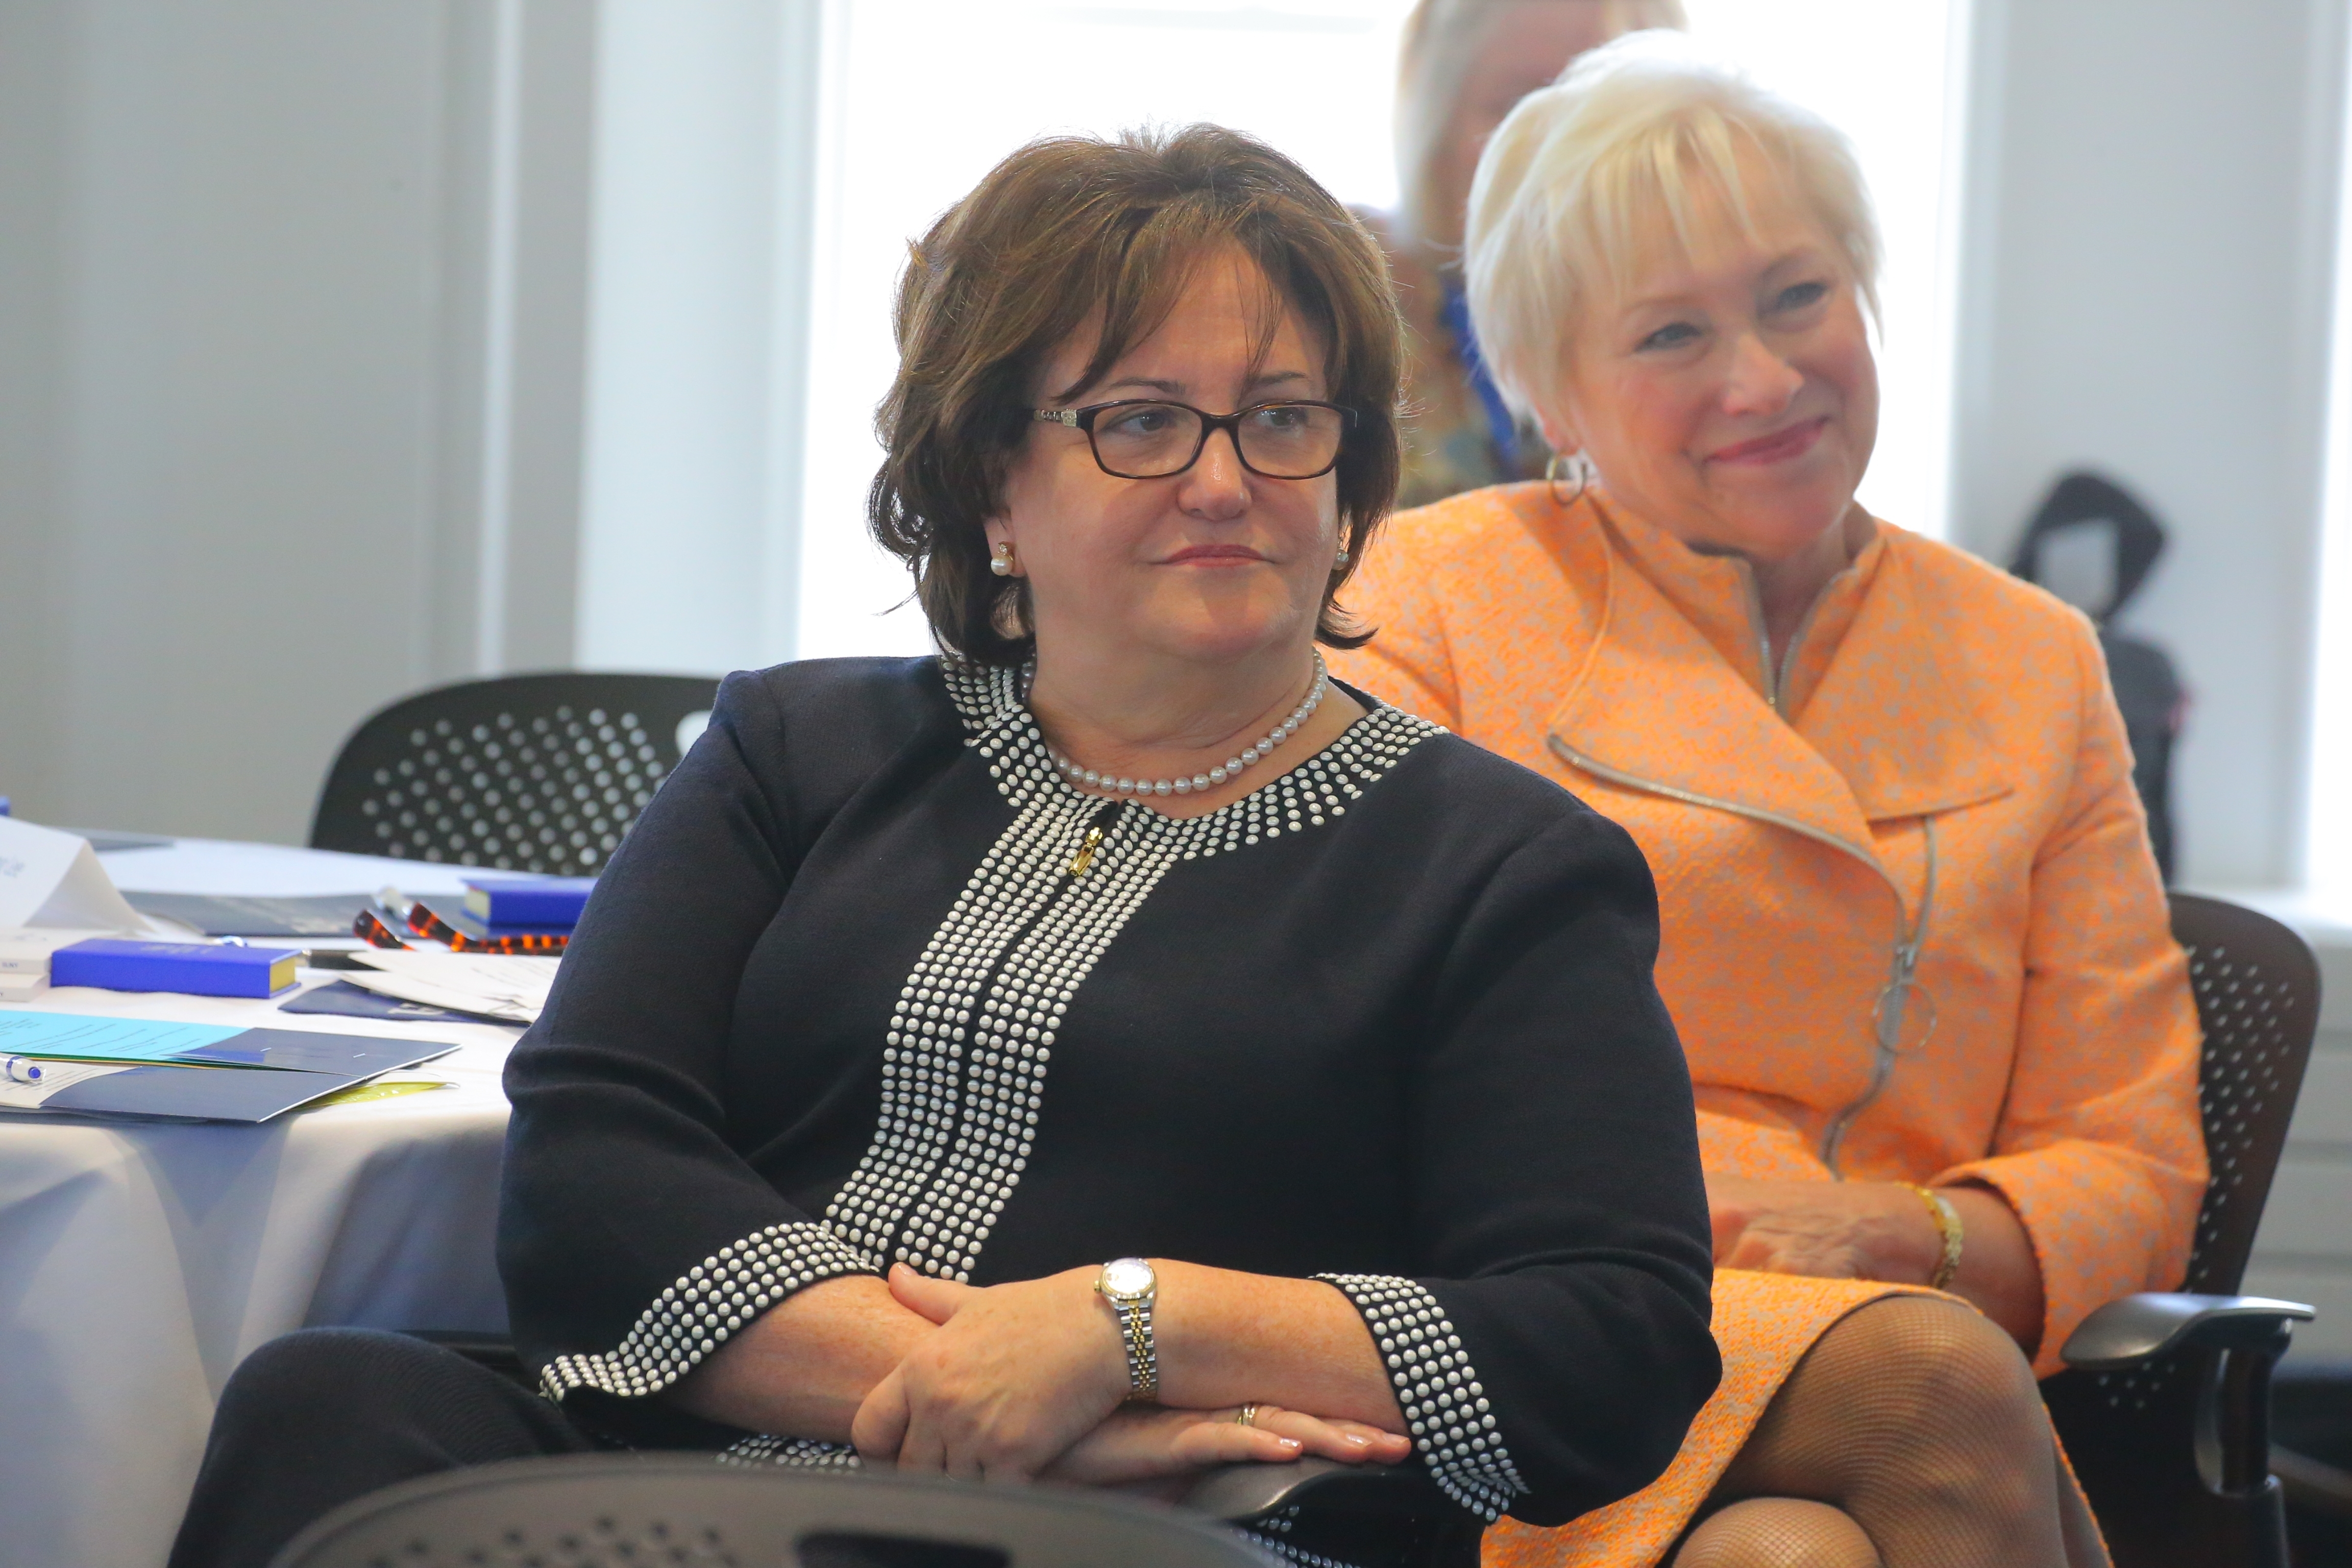 Mary Ellen Elia and Nancy L. Zimpher listen to teachers discuss the current state of teaching in Hayes Hall at UB on Tuesday.